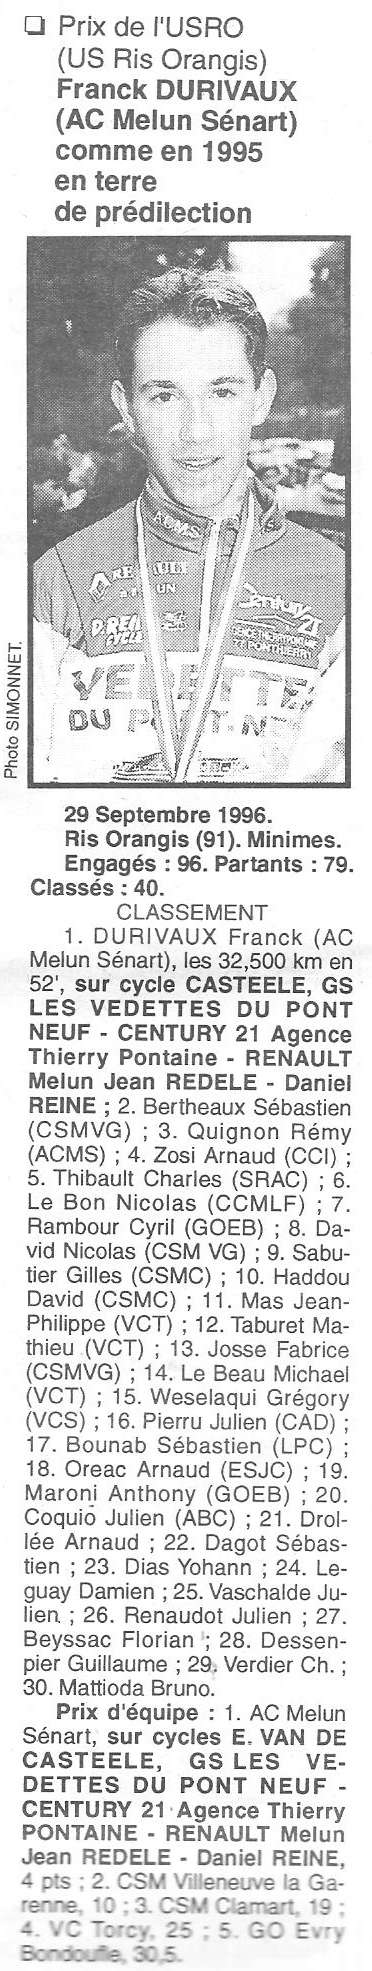 Coureurs et Clubs de Octobre 1993 à Septembre 1996 - Page 42 0_03313